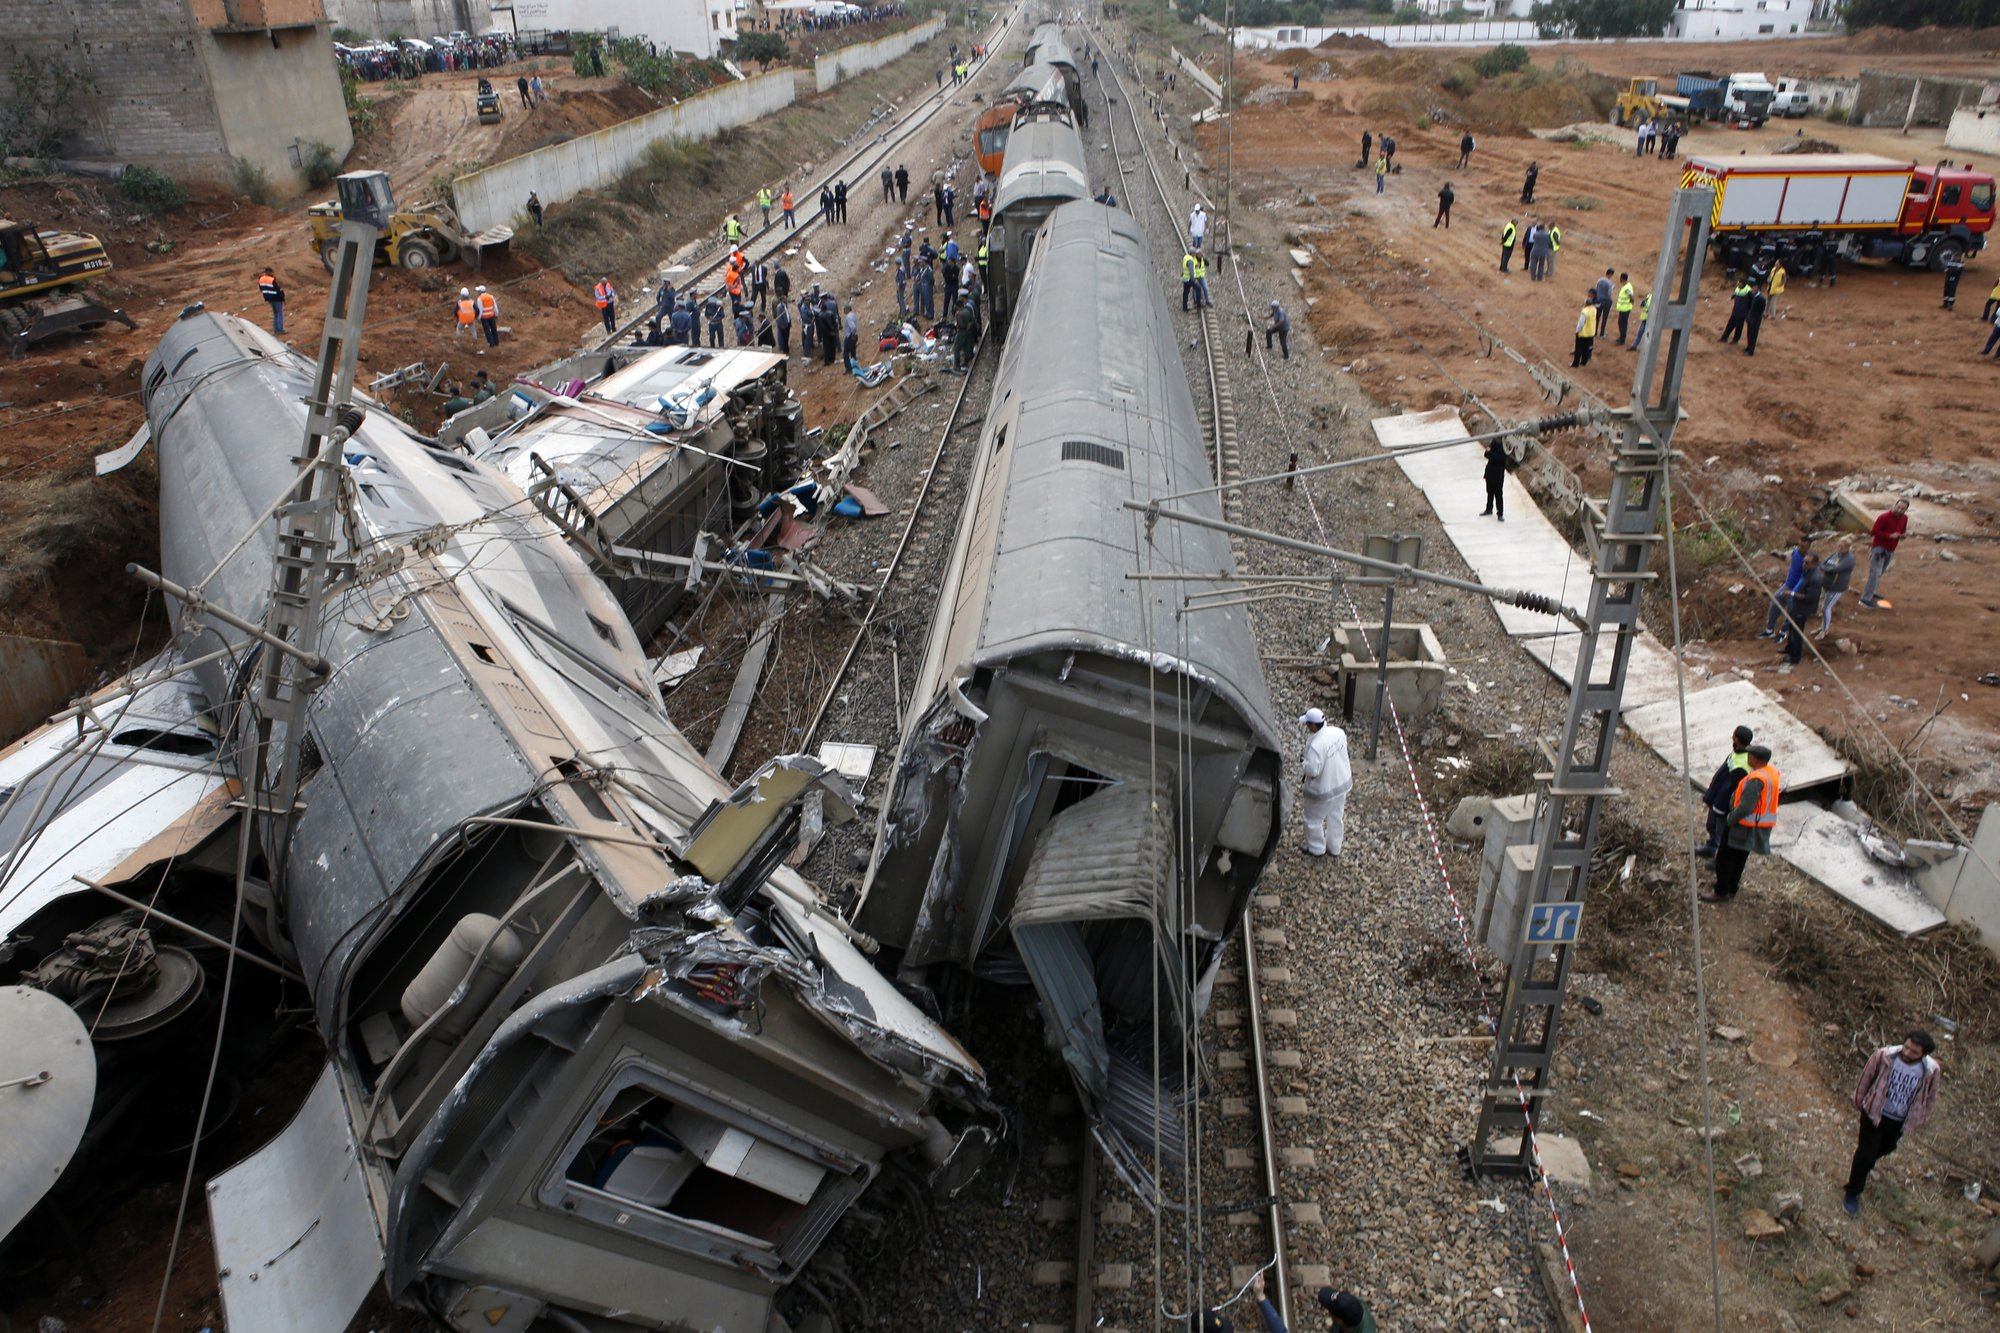 People gather after train derailed Tuesday Oct.16, 2018 near Sidi Bouknadel, Morocco. Photo: AP